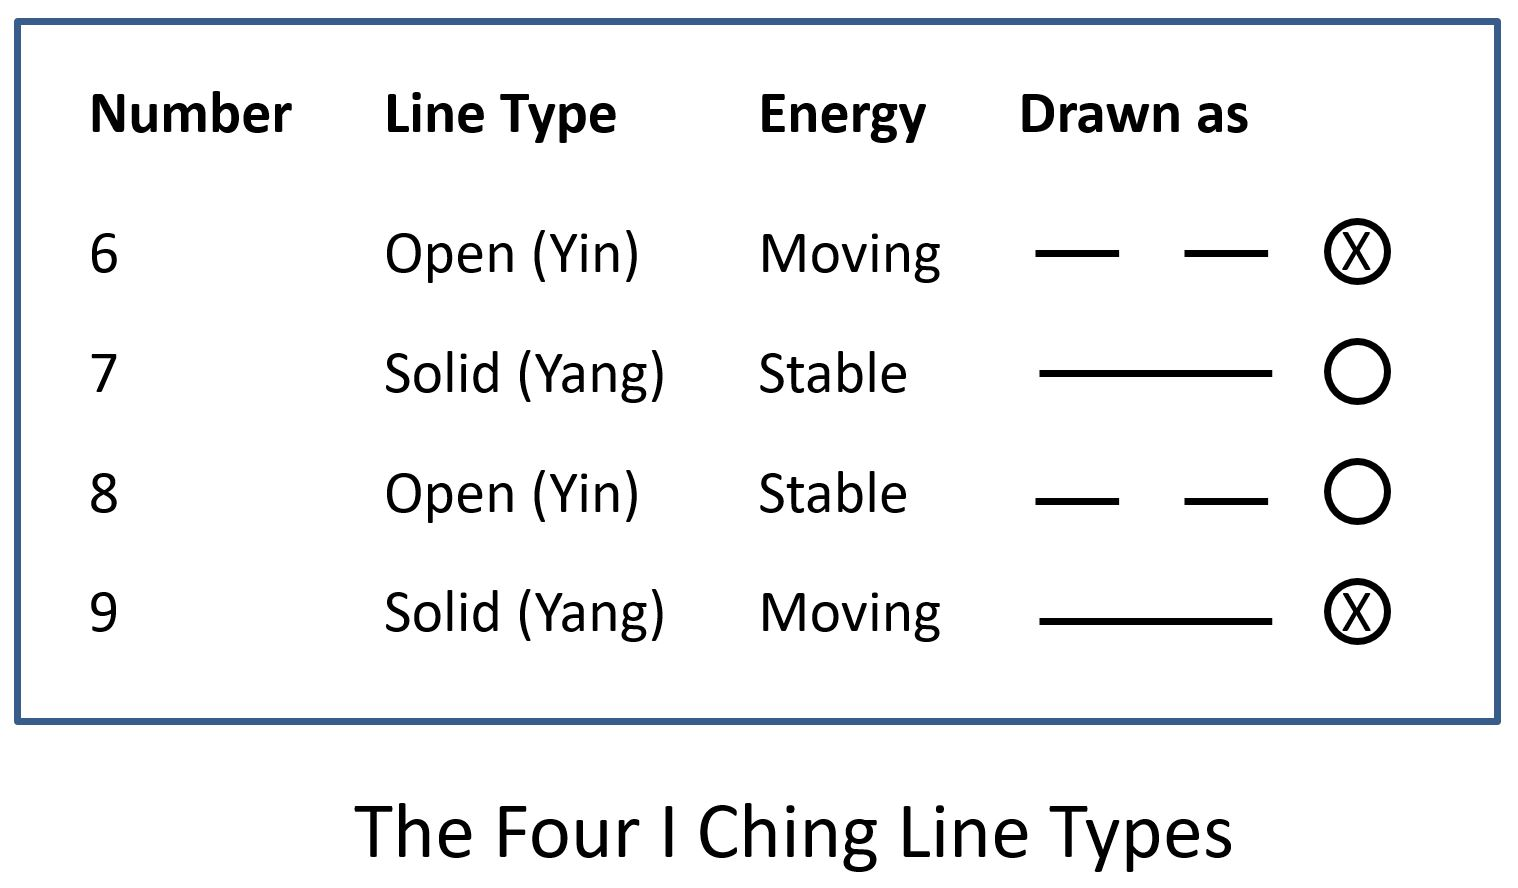 The Four I Ching Hexagram Line Types